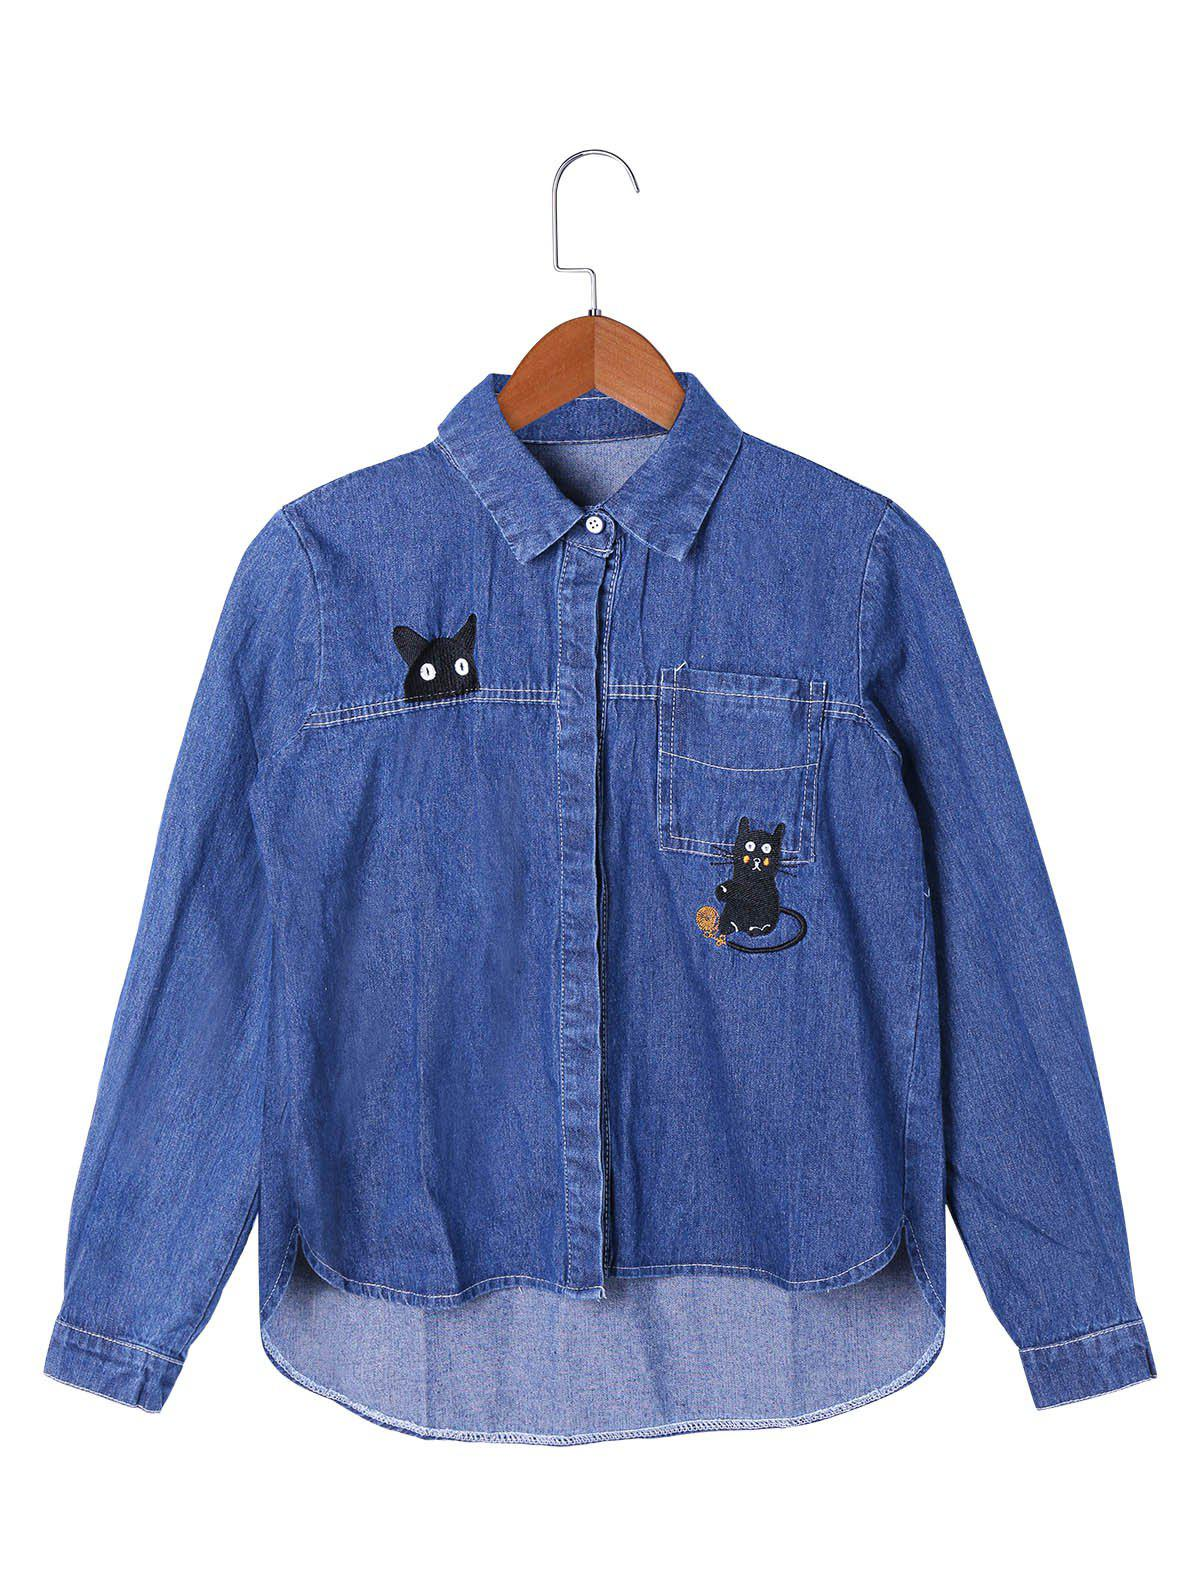 Patch Pocket High Low Hem Shirt Jacket - BLUE M